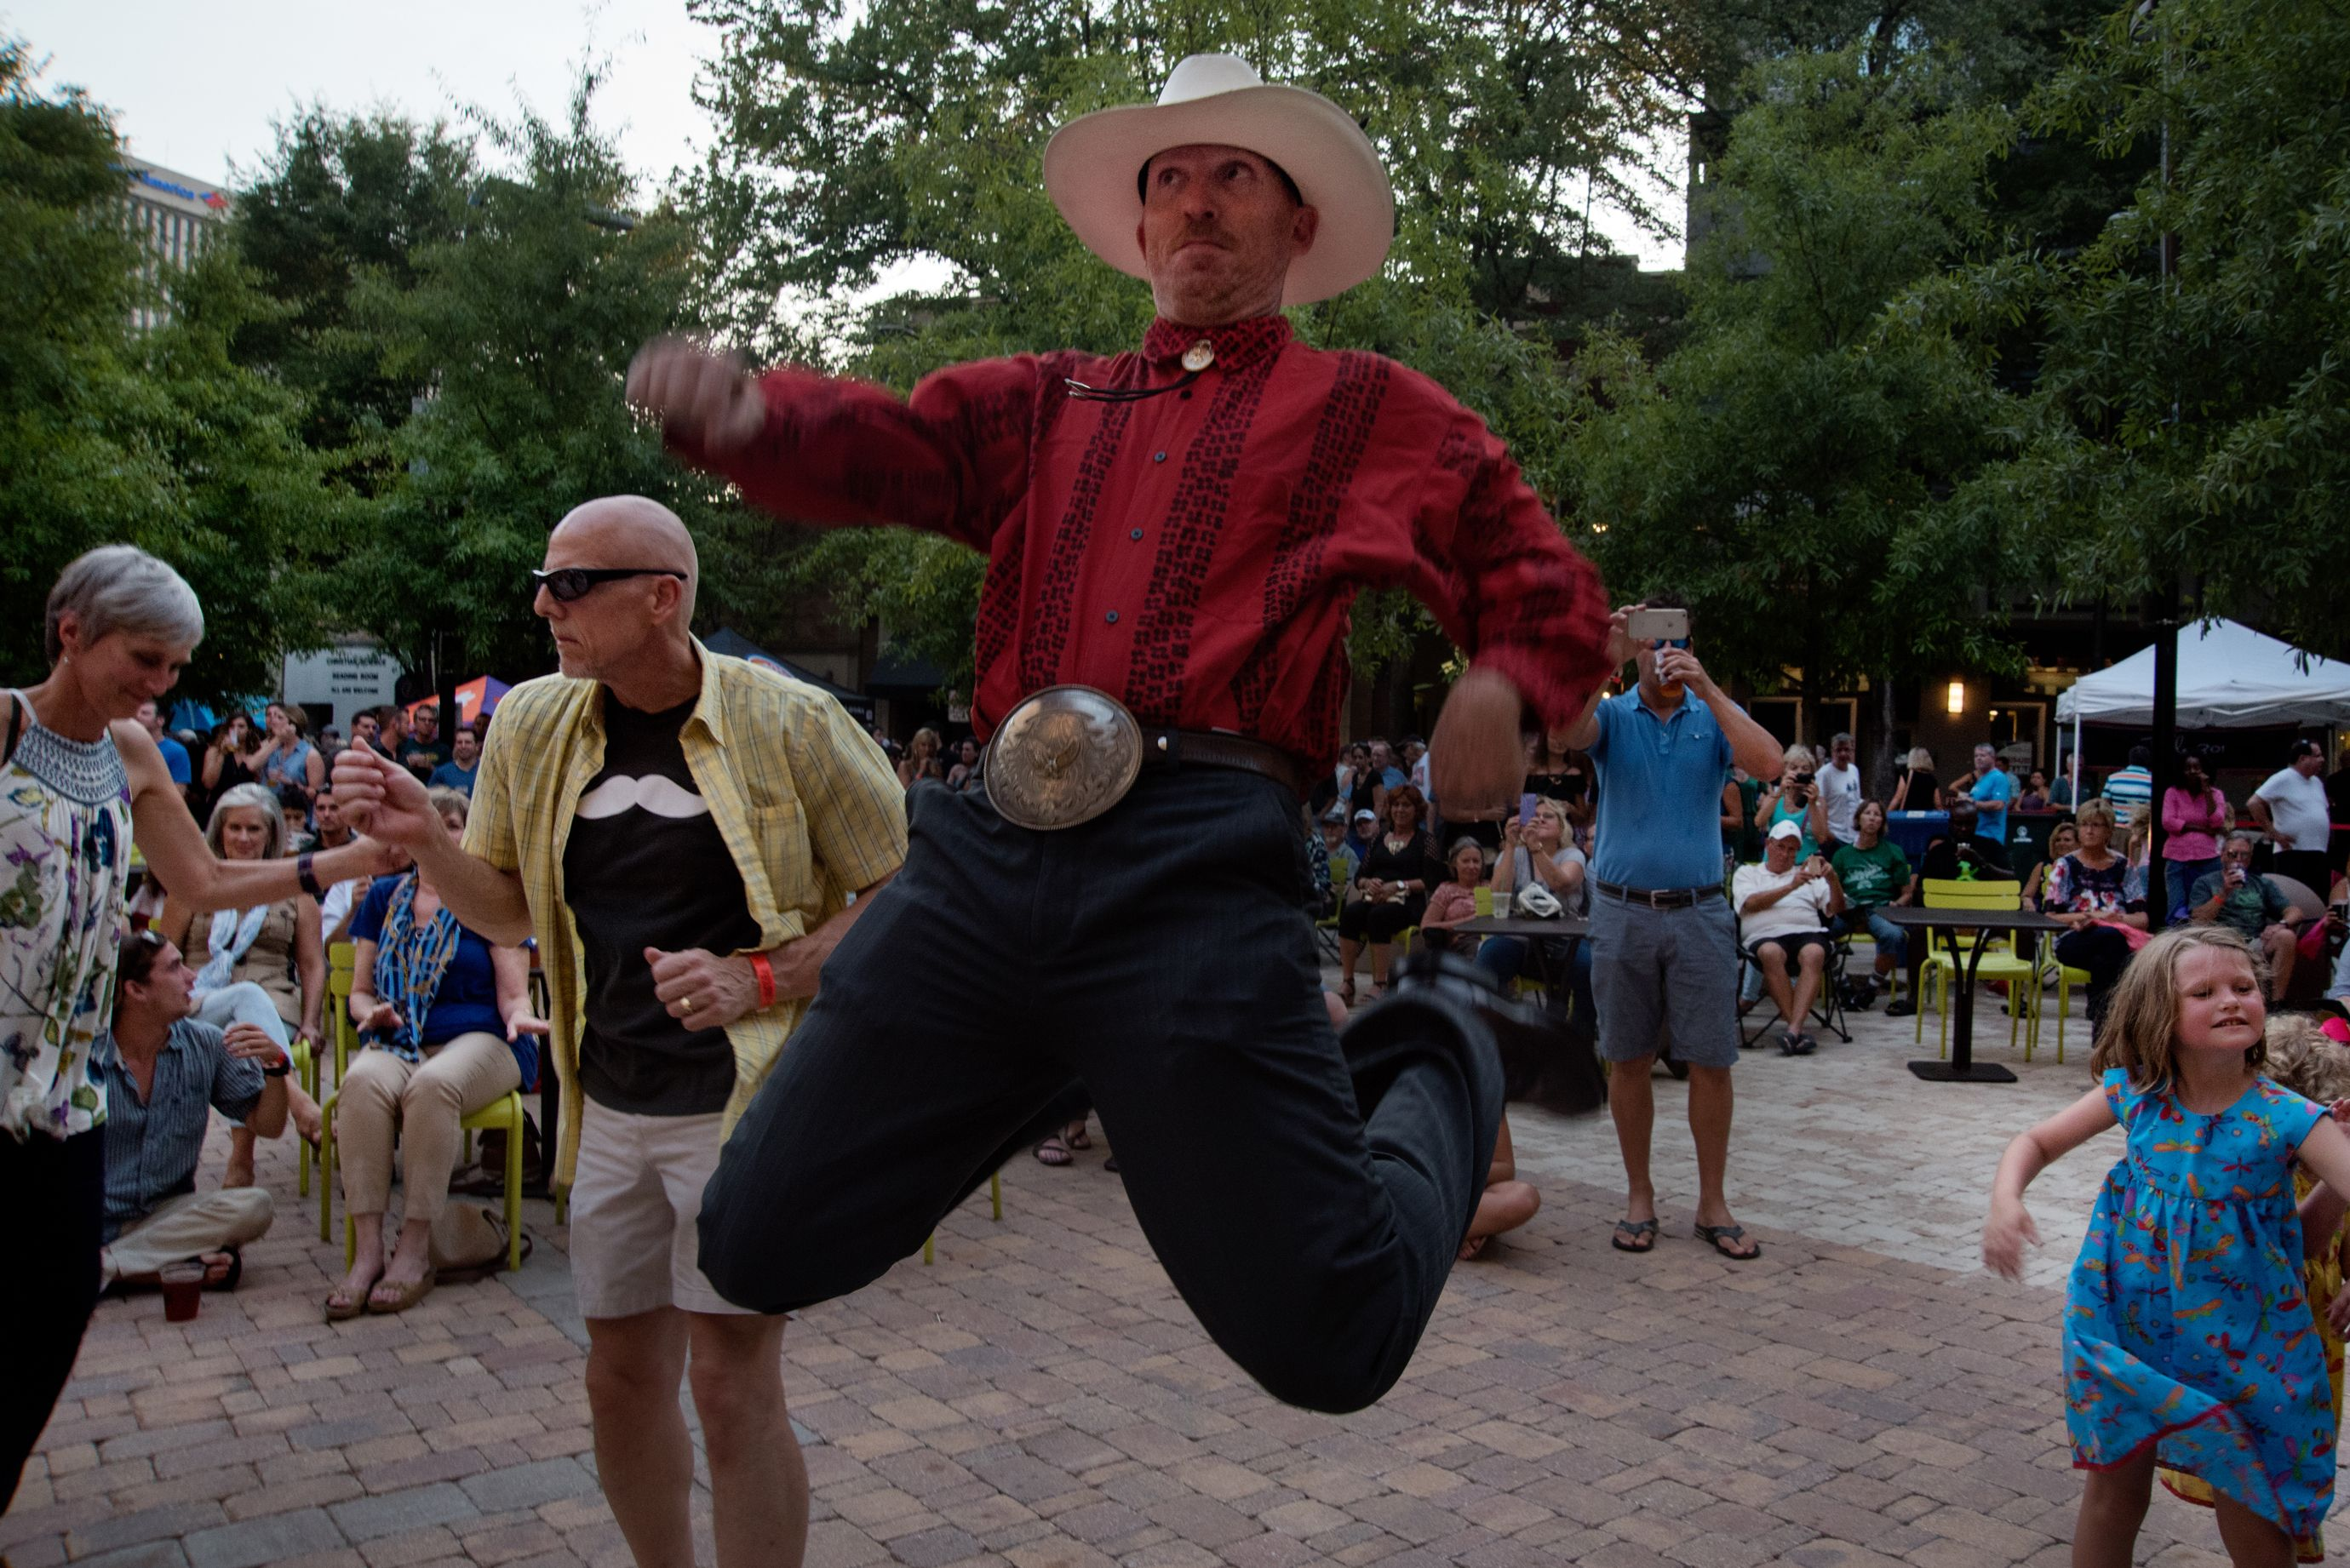 Residents gather to listen to live music and dance at the free weekly concert in downtown Greenville. (5 of 10)